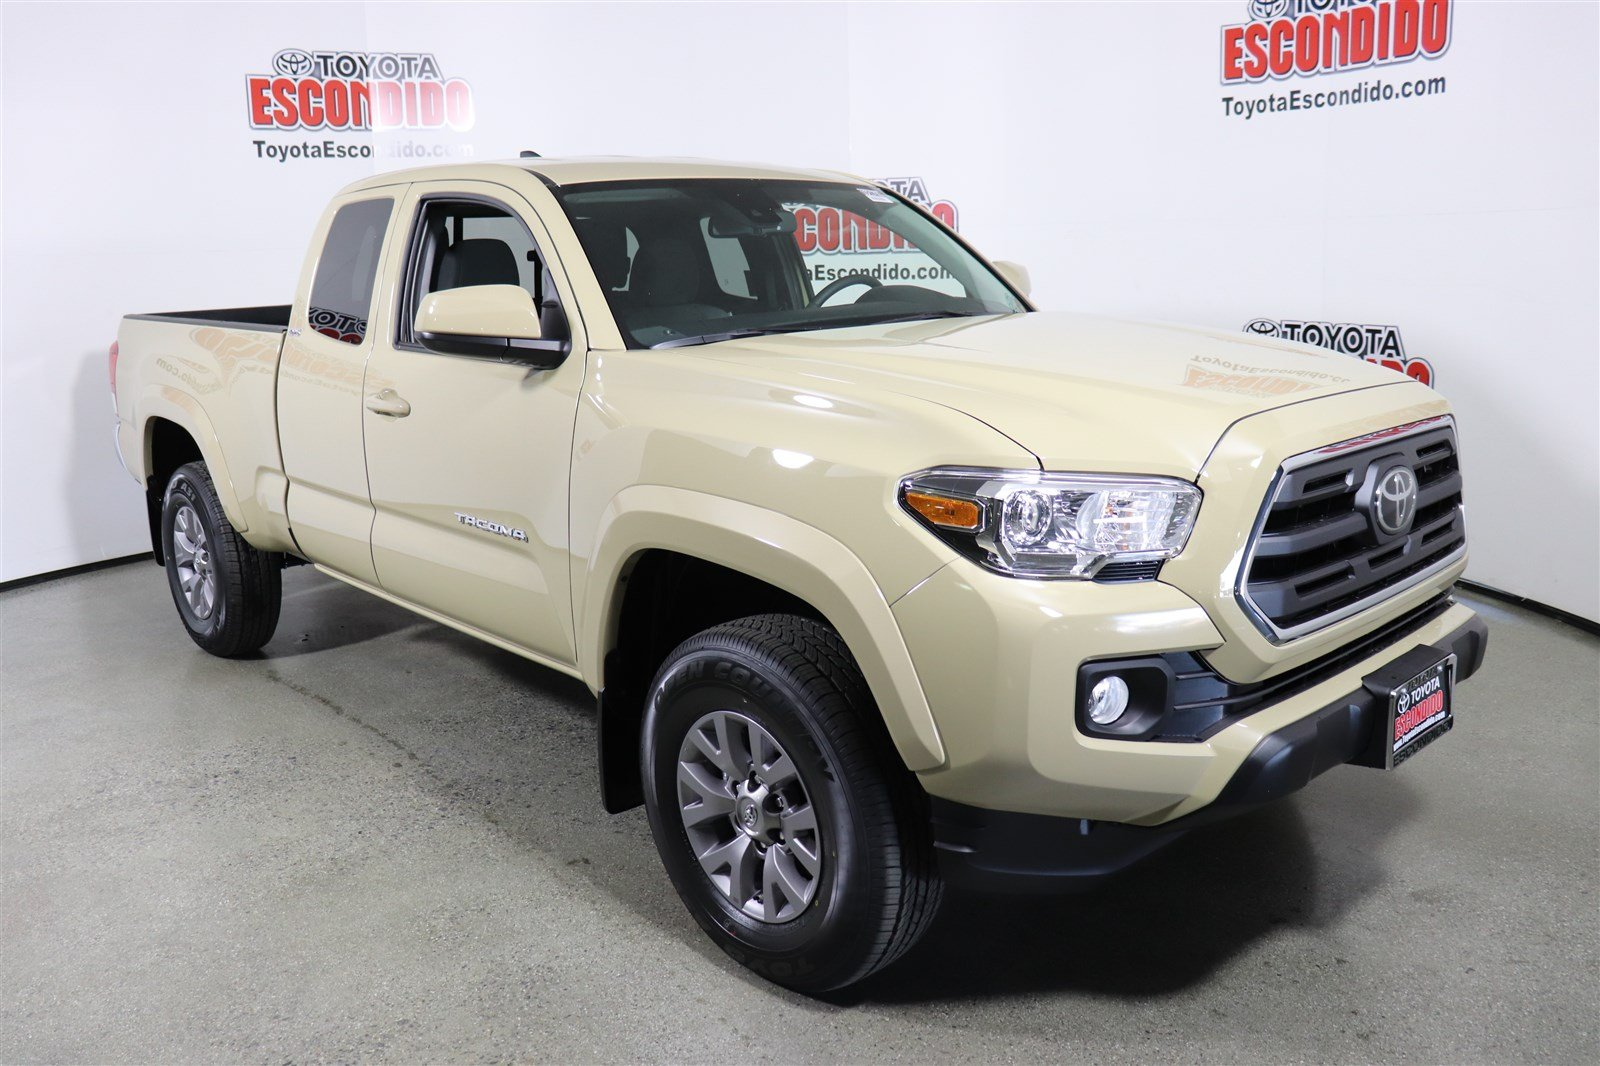 New 2019 Toyota Tacoma 2wd Sr5 Double Cab Pickup In Escondido